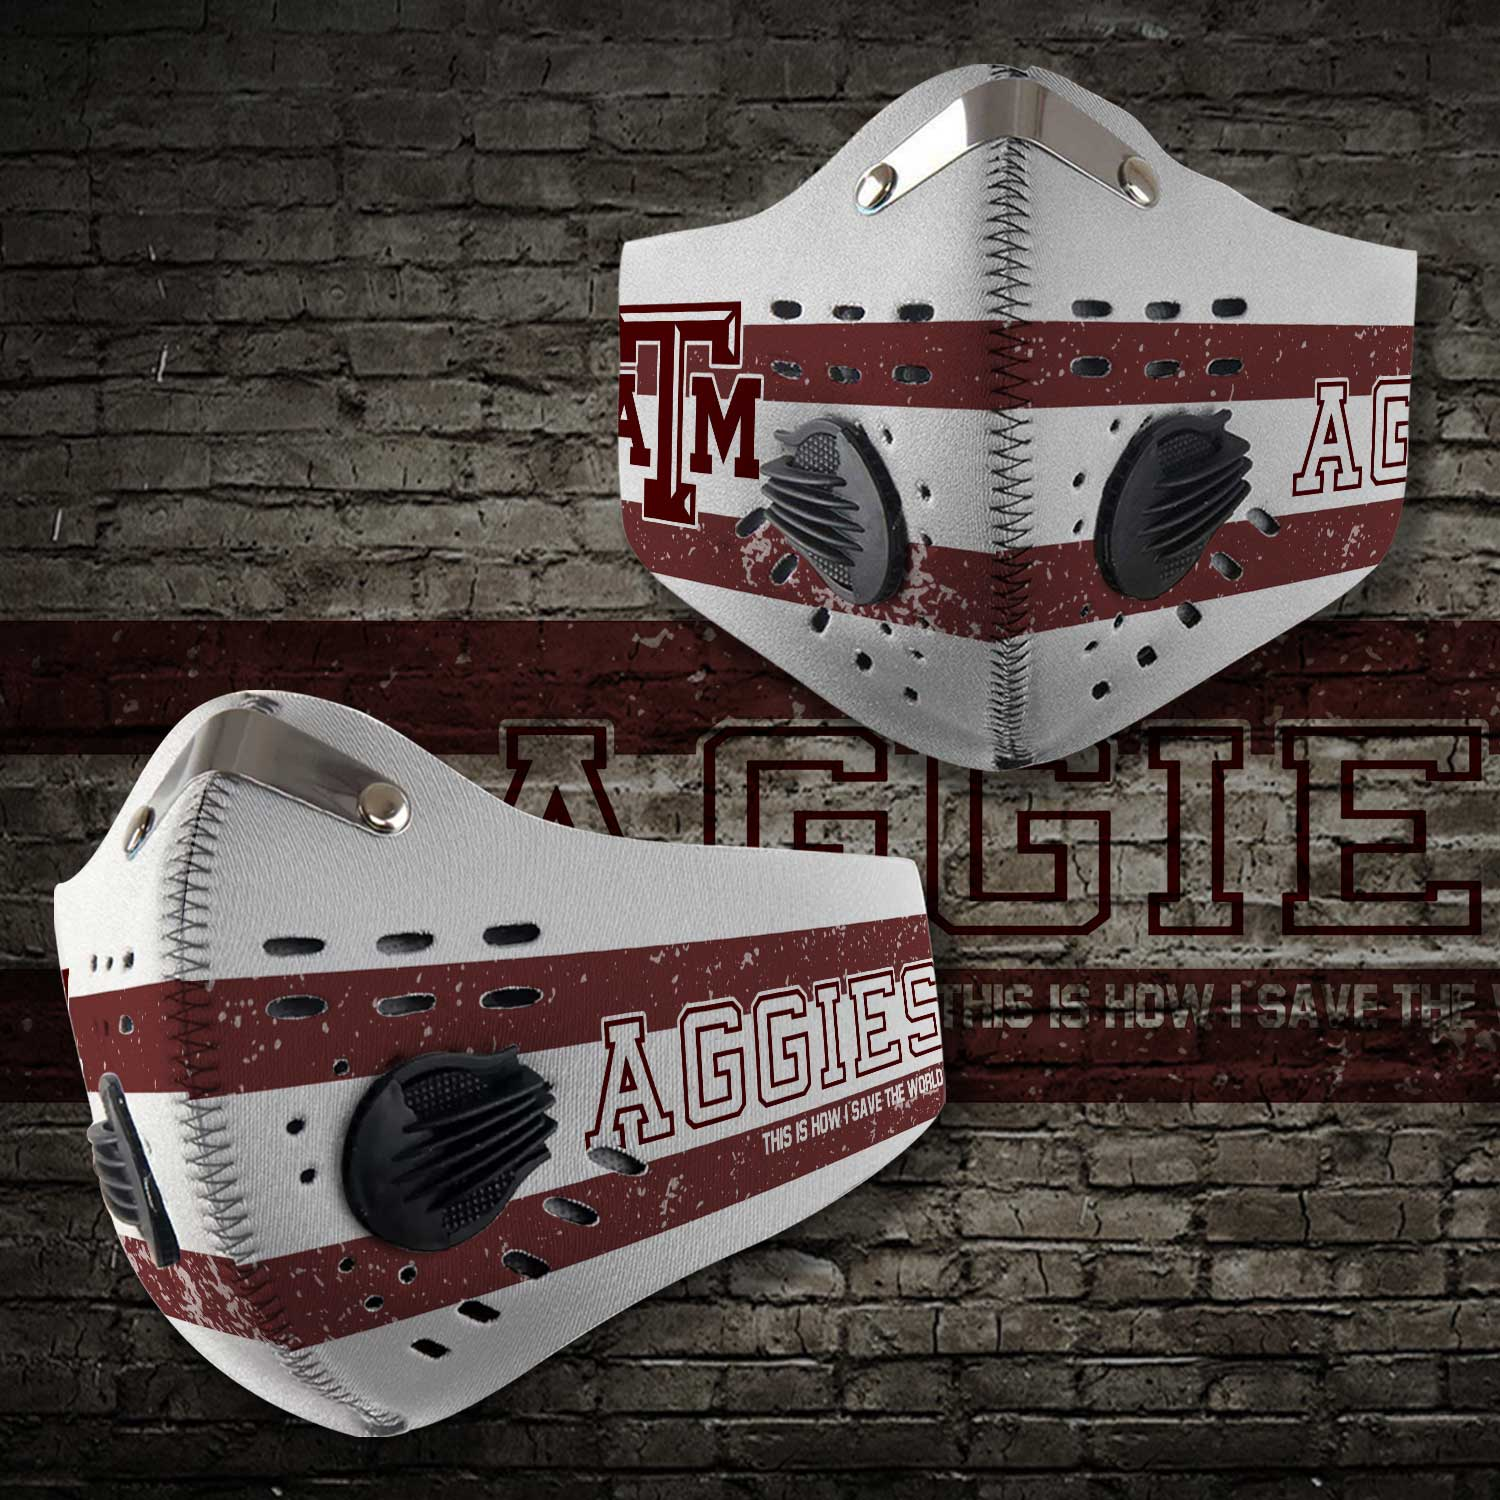 Texas am aggies football this is how i save the world face mask 1